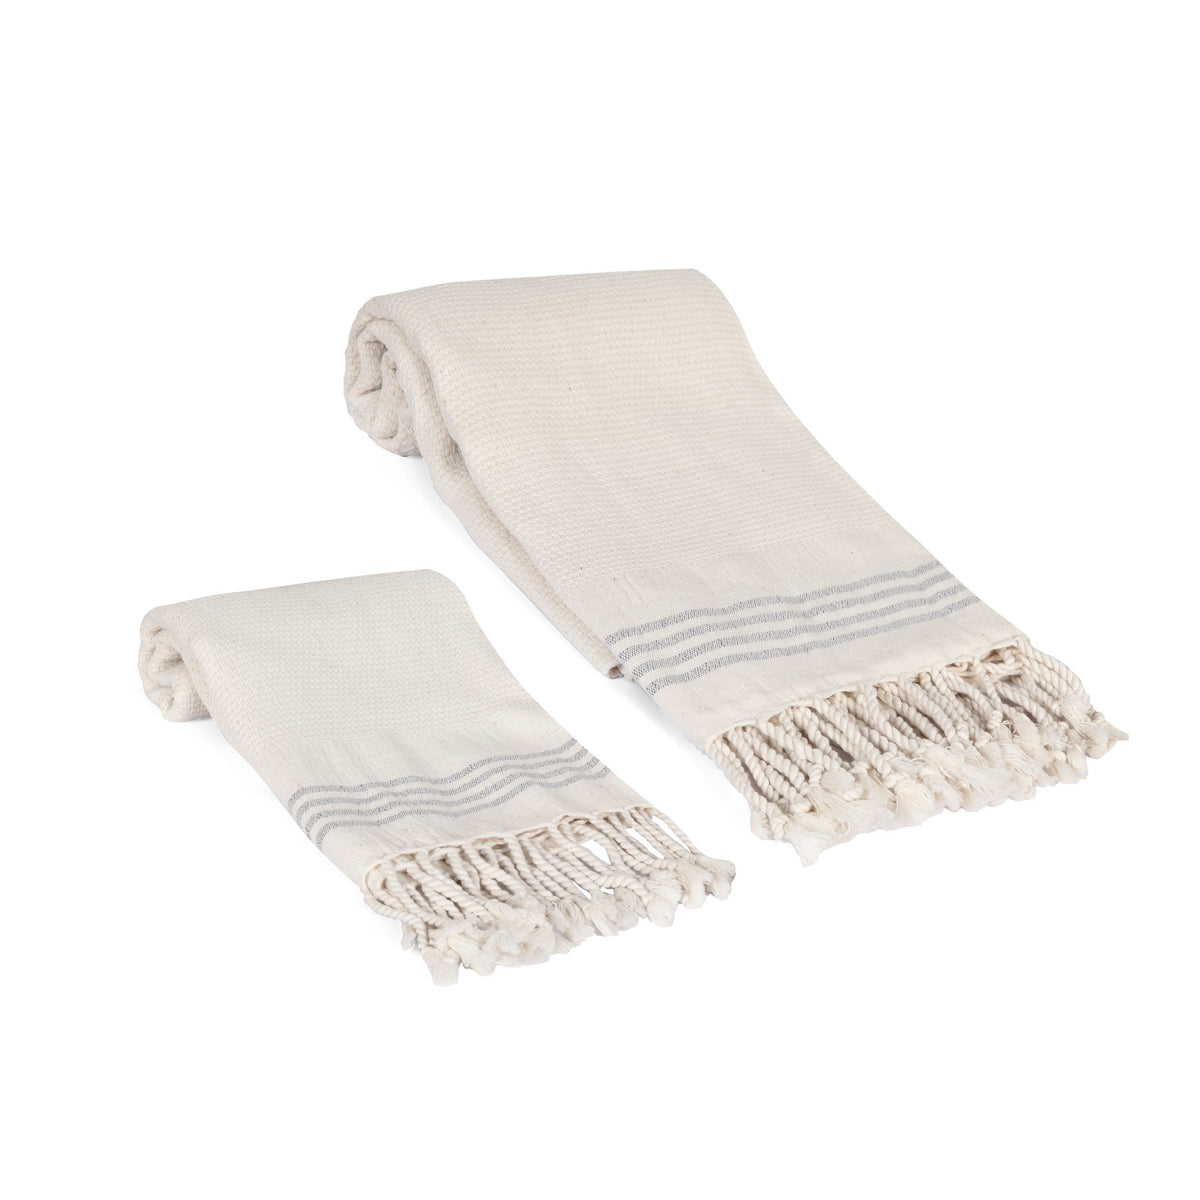 Whisper Weight Natural Turkish Towel Set